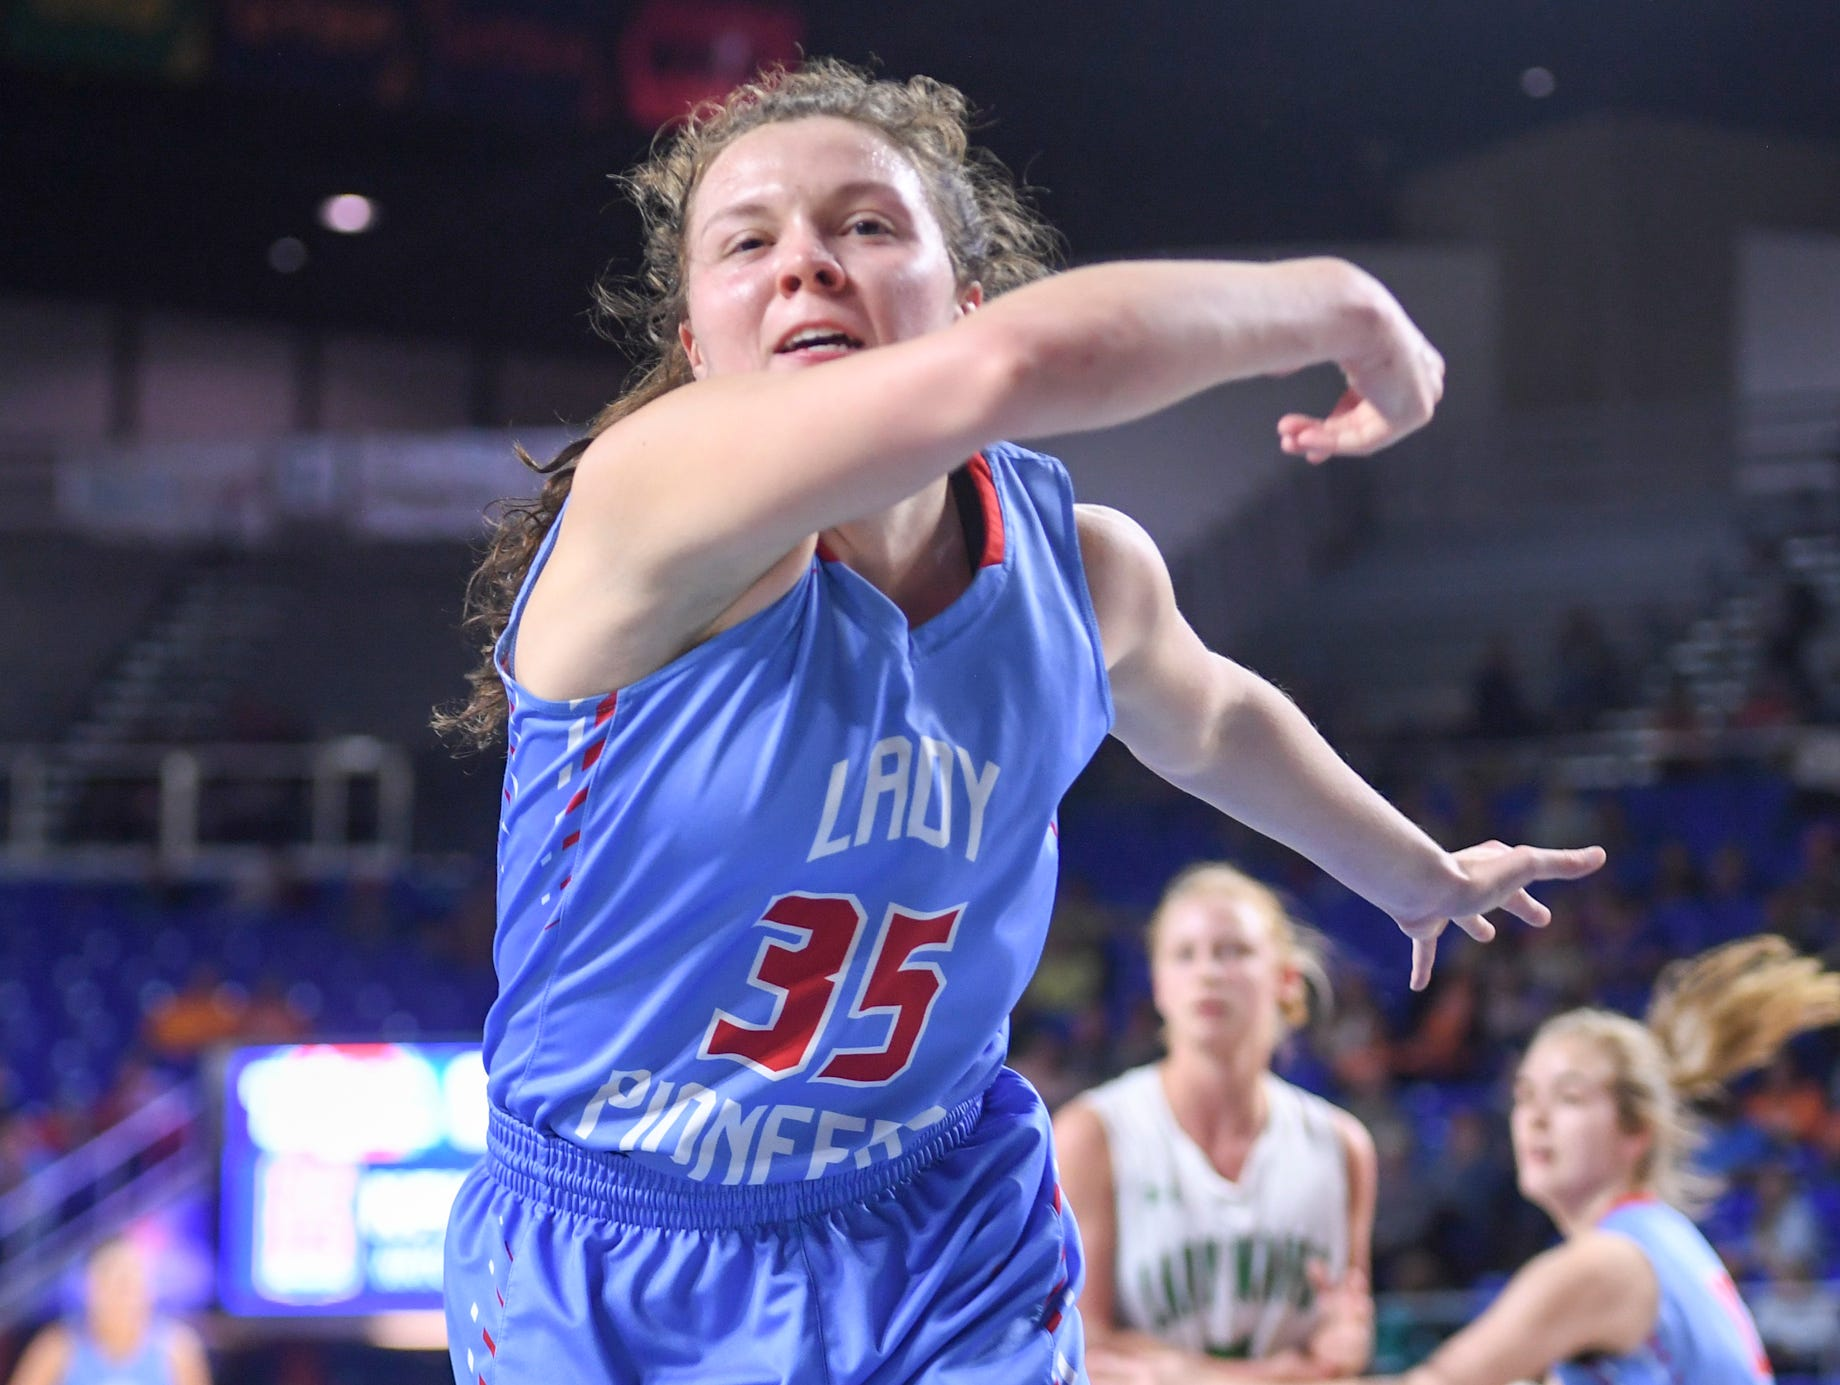 Gibson County's Hannah Ball (35) attempts to save a ball from going out of bounds during their Class A semifinal game against Midway, Friday, March 8, 2019, in  Murfreesboro.